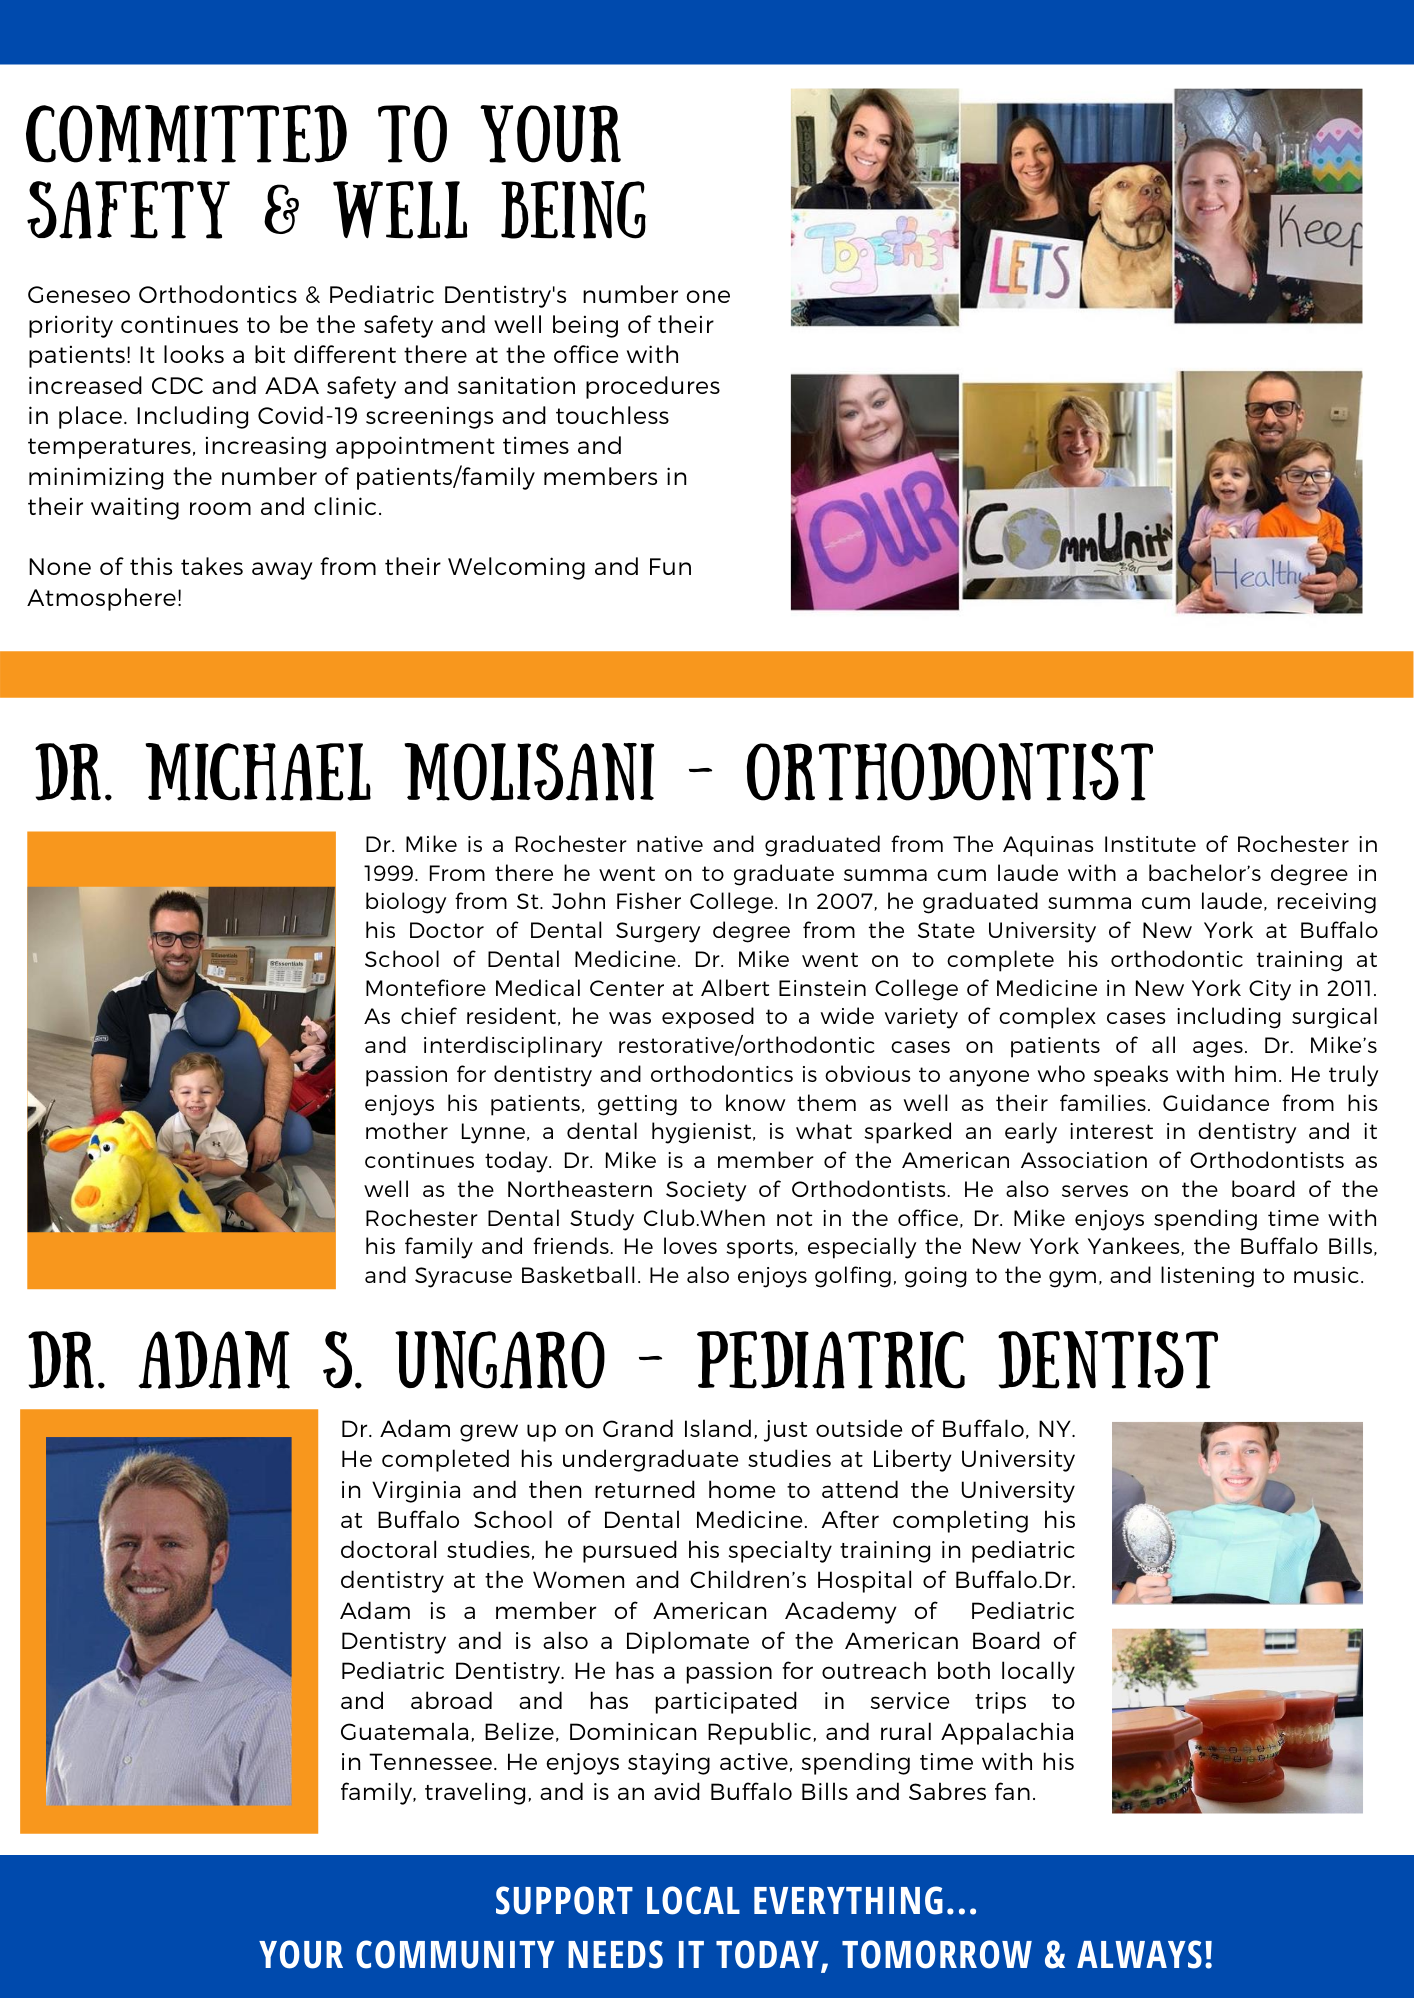 Geneseo-Ortho-page-2.png